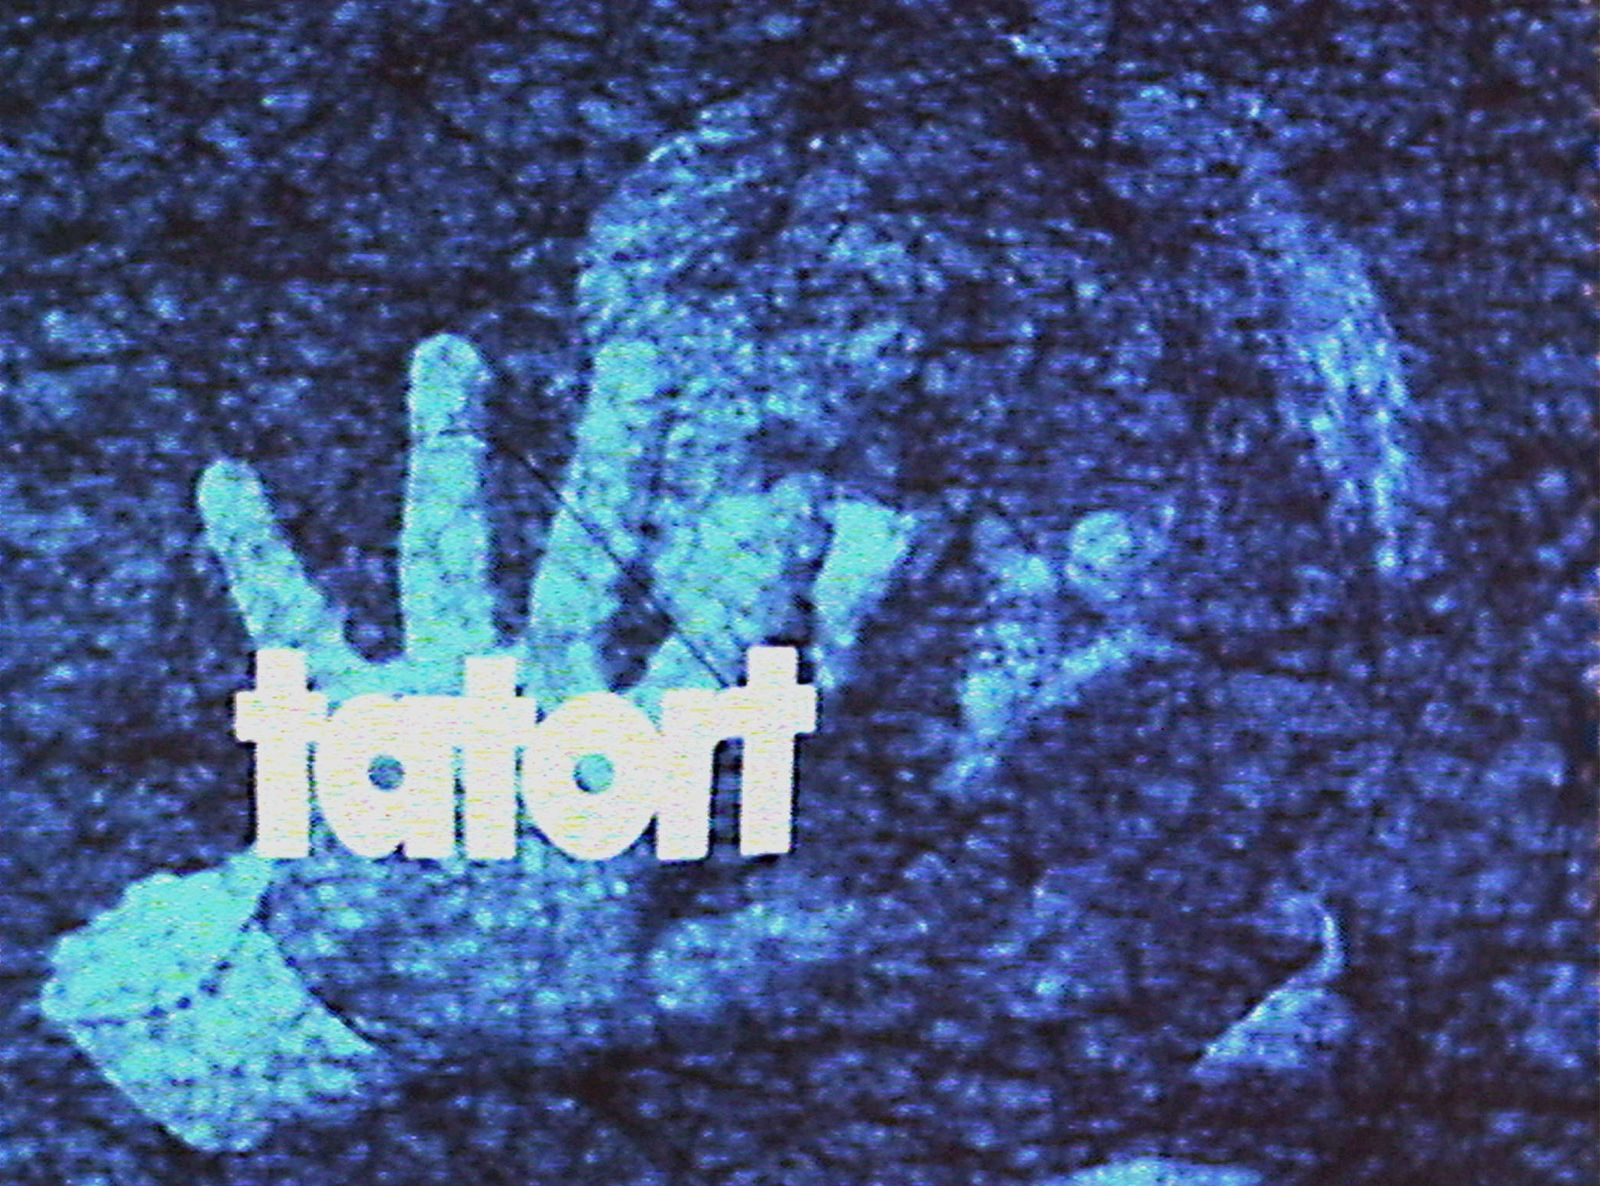 Production photo from the opening credits of the TV series Tatort (G since 1970)